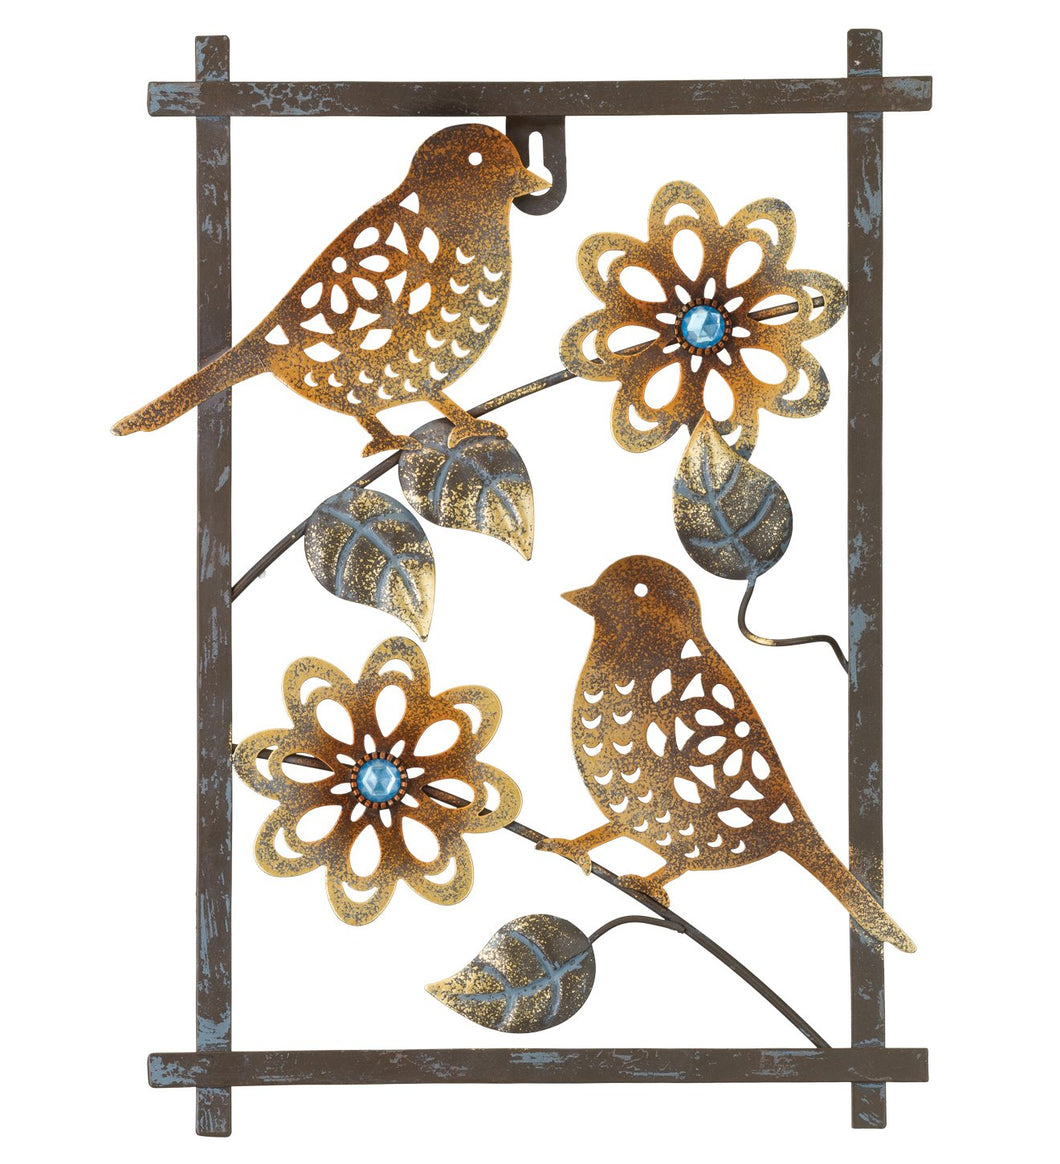 Regal Art & Gift Sienna Wall Decor - Bird